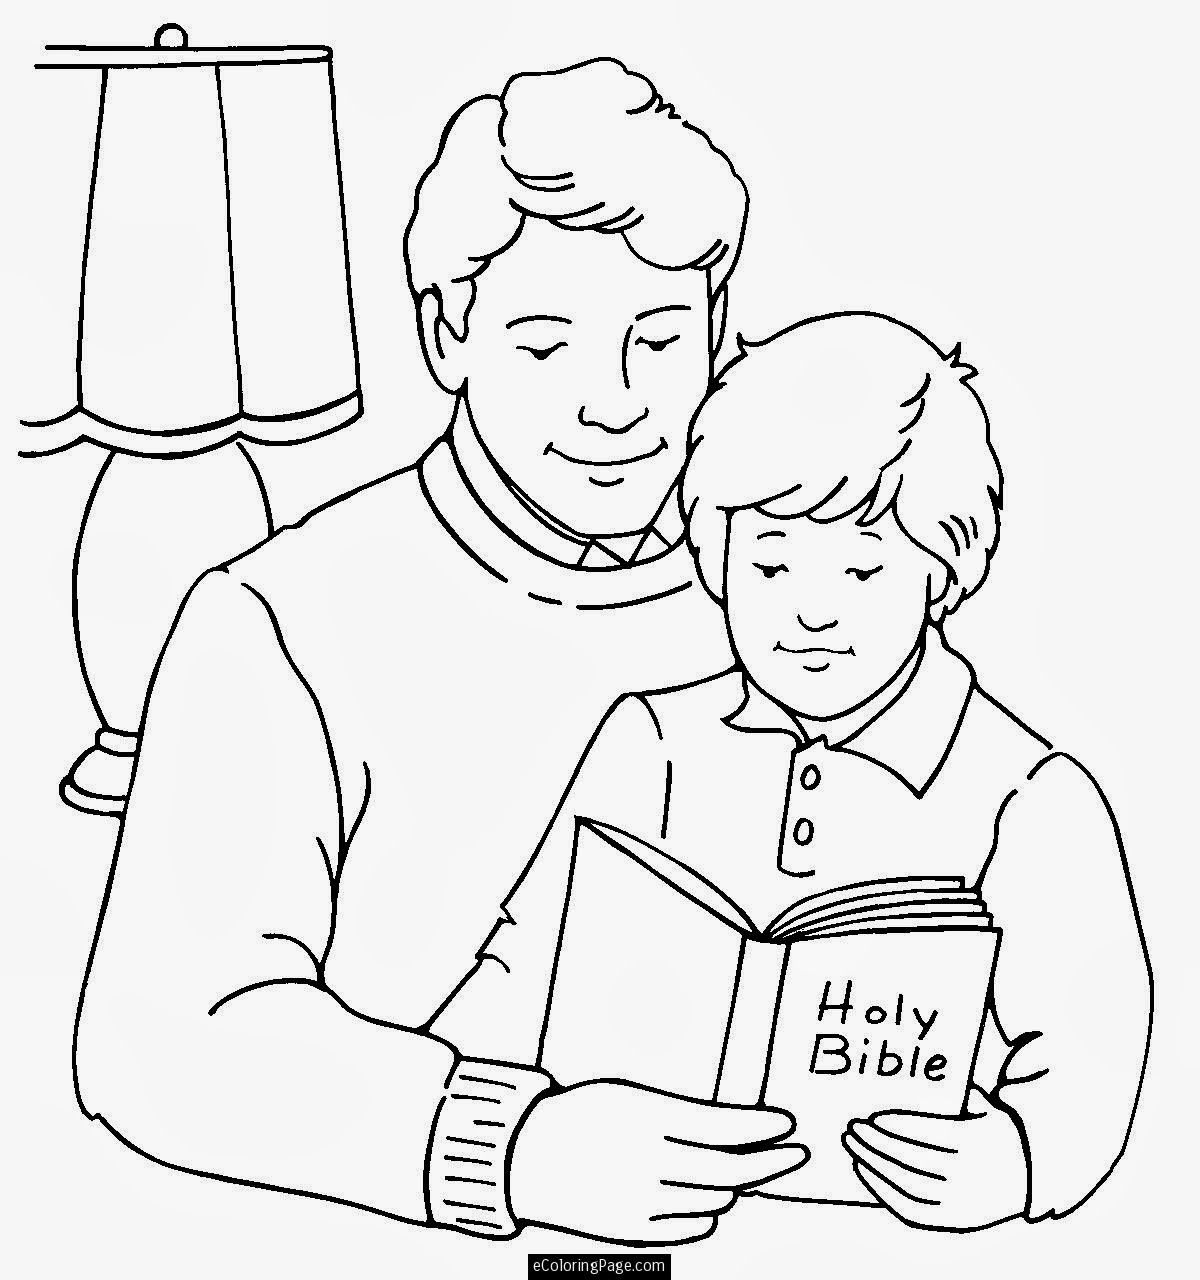 bible coloring for kids must have free bible verse printable coloring sheets coloring kids for bible